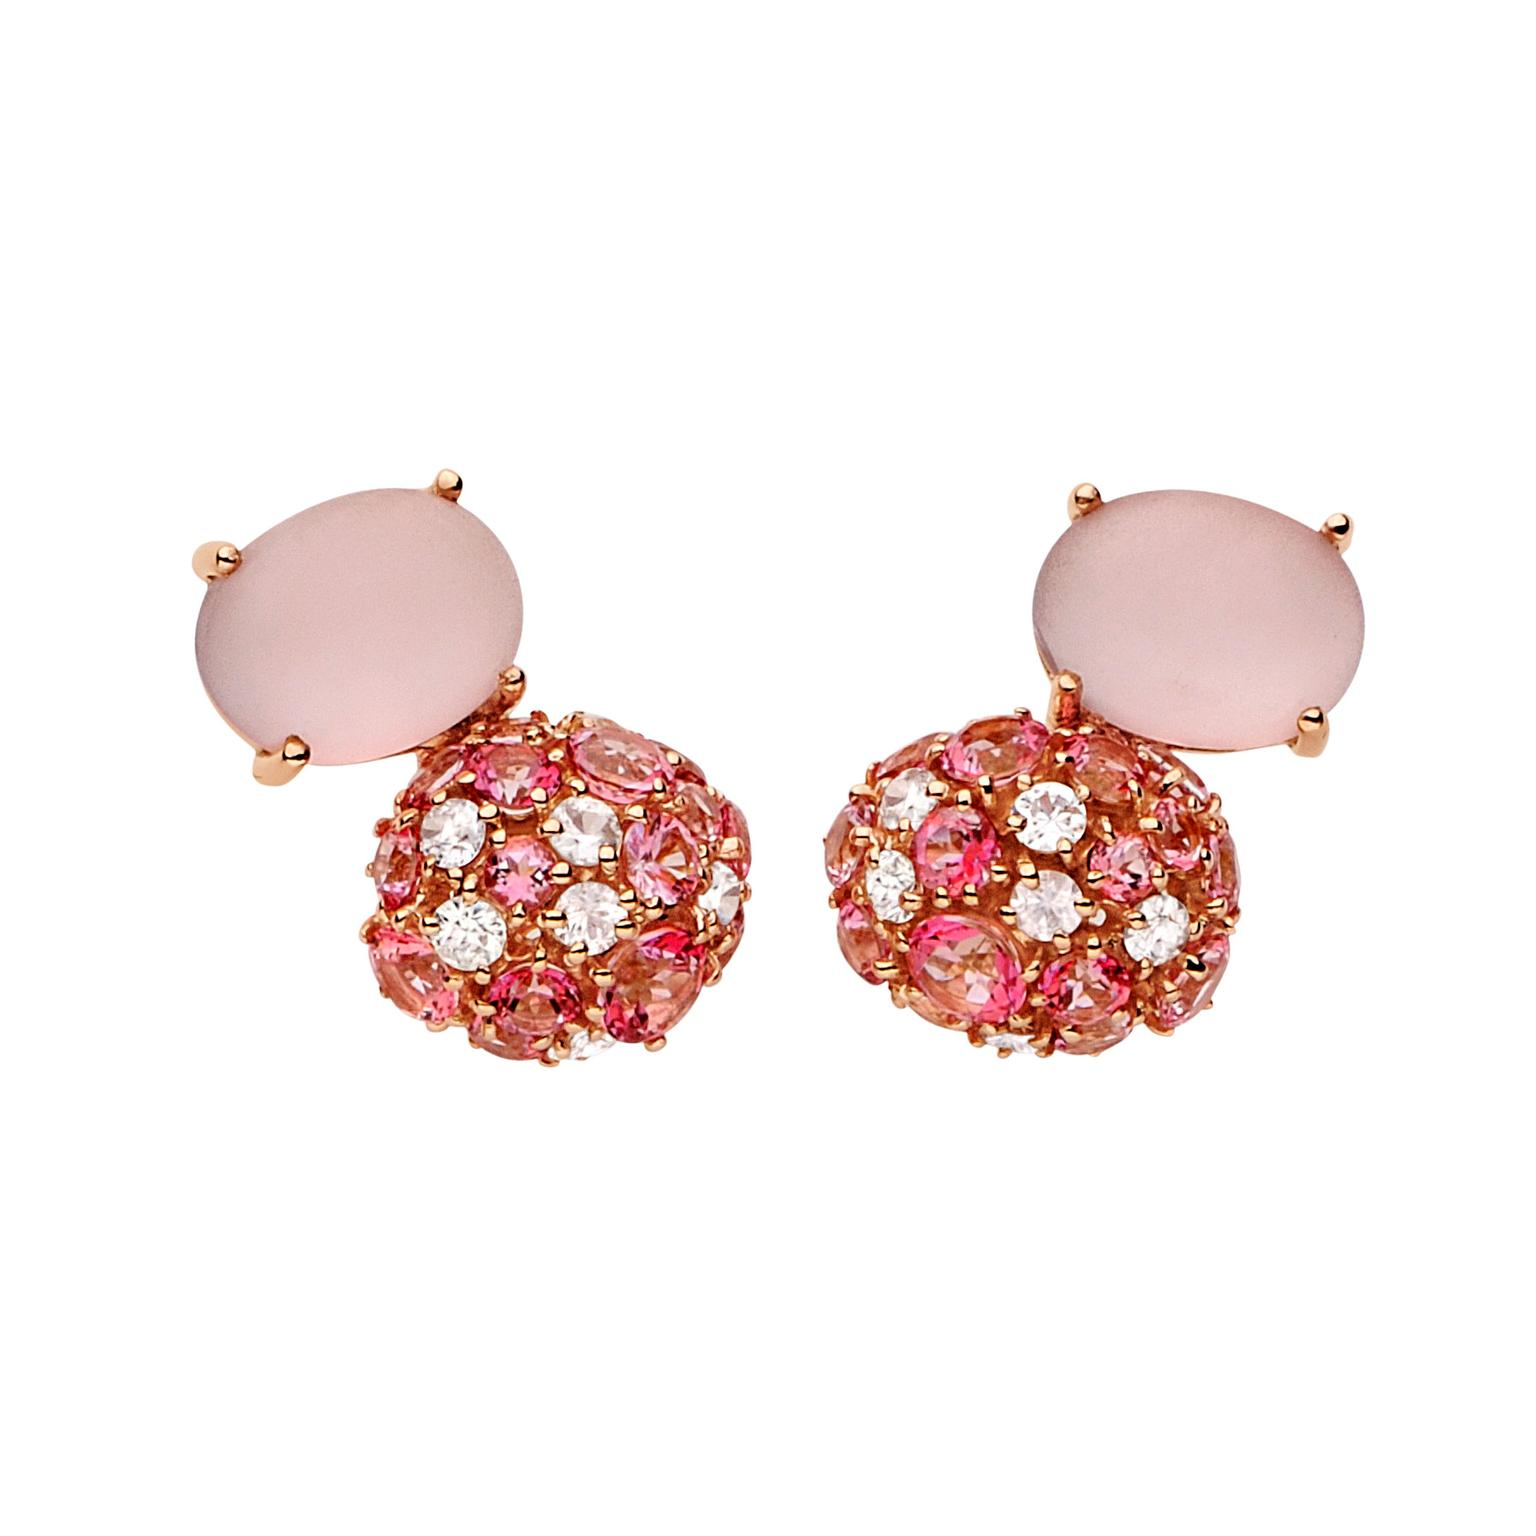 Brumani Baobab Bubbles rose gold, diamond and rose quartz earrings